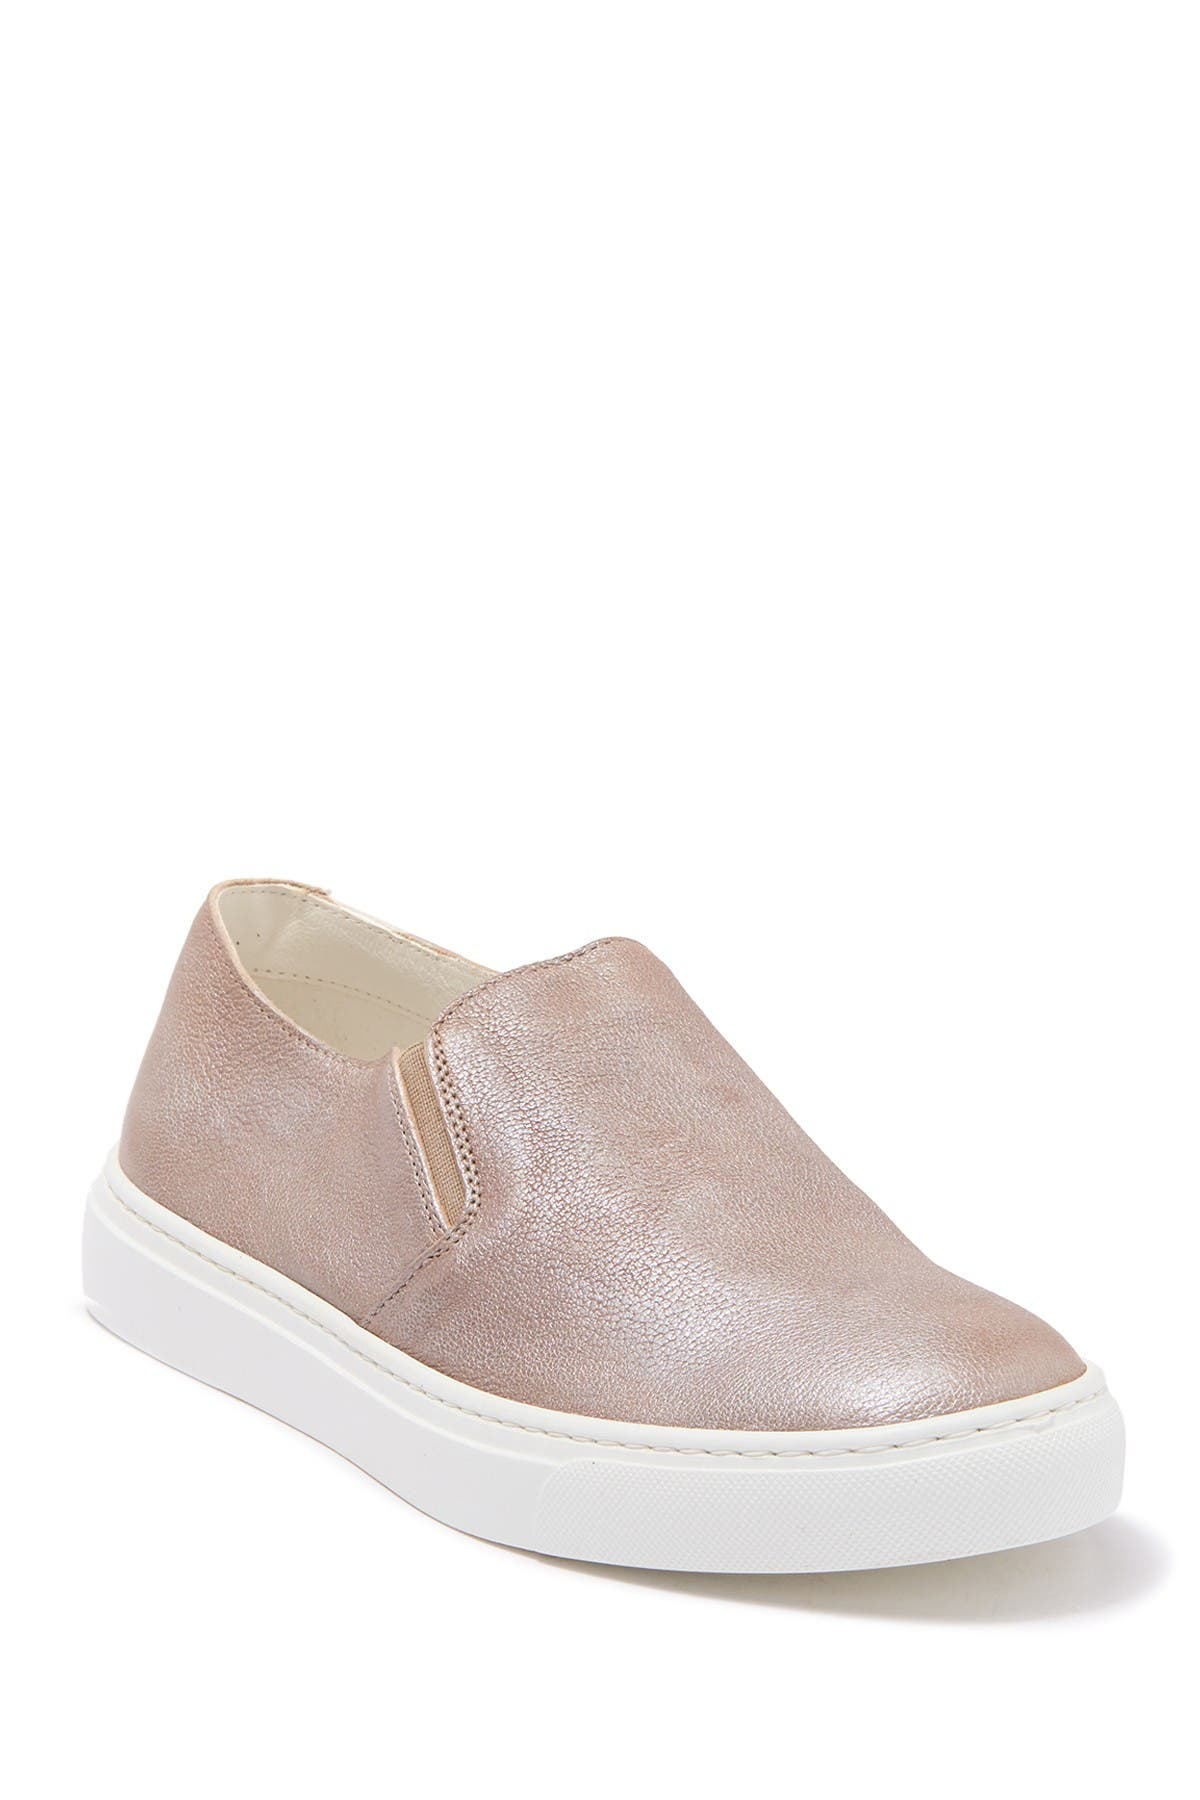 Image of To Boot New York Sofia Slip-On Sneaker